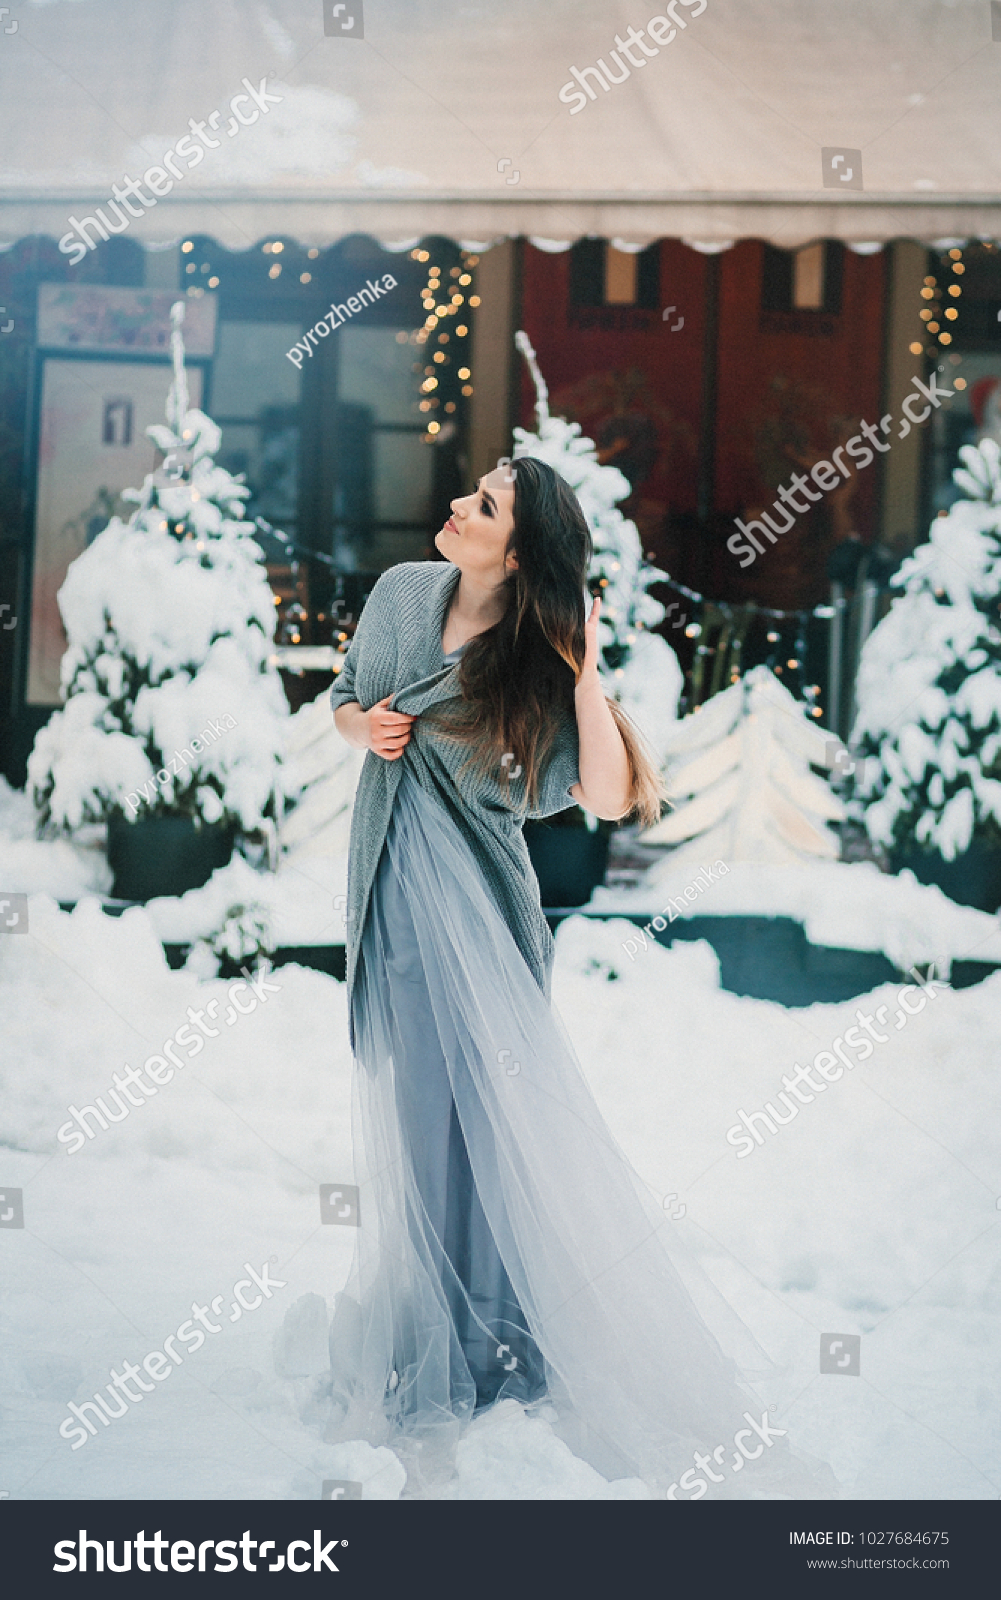 Adorable Girl Light Summer Dress Warm Stock Photo & Image (Royalty ...